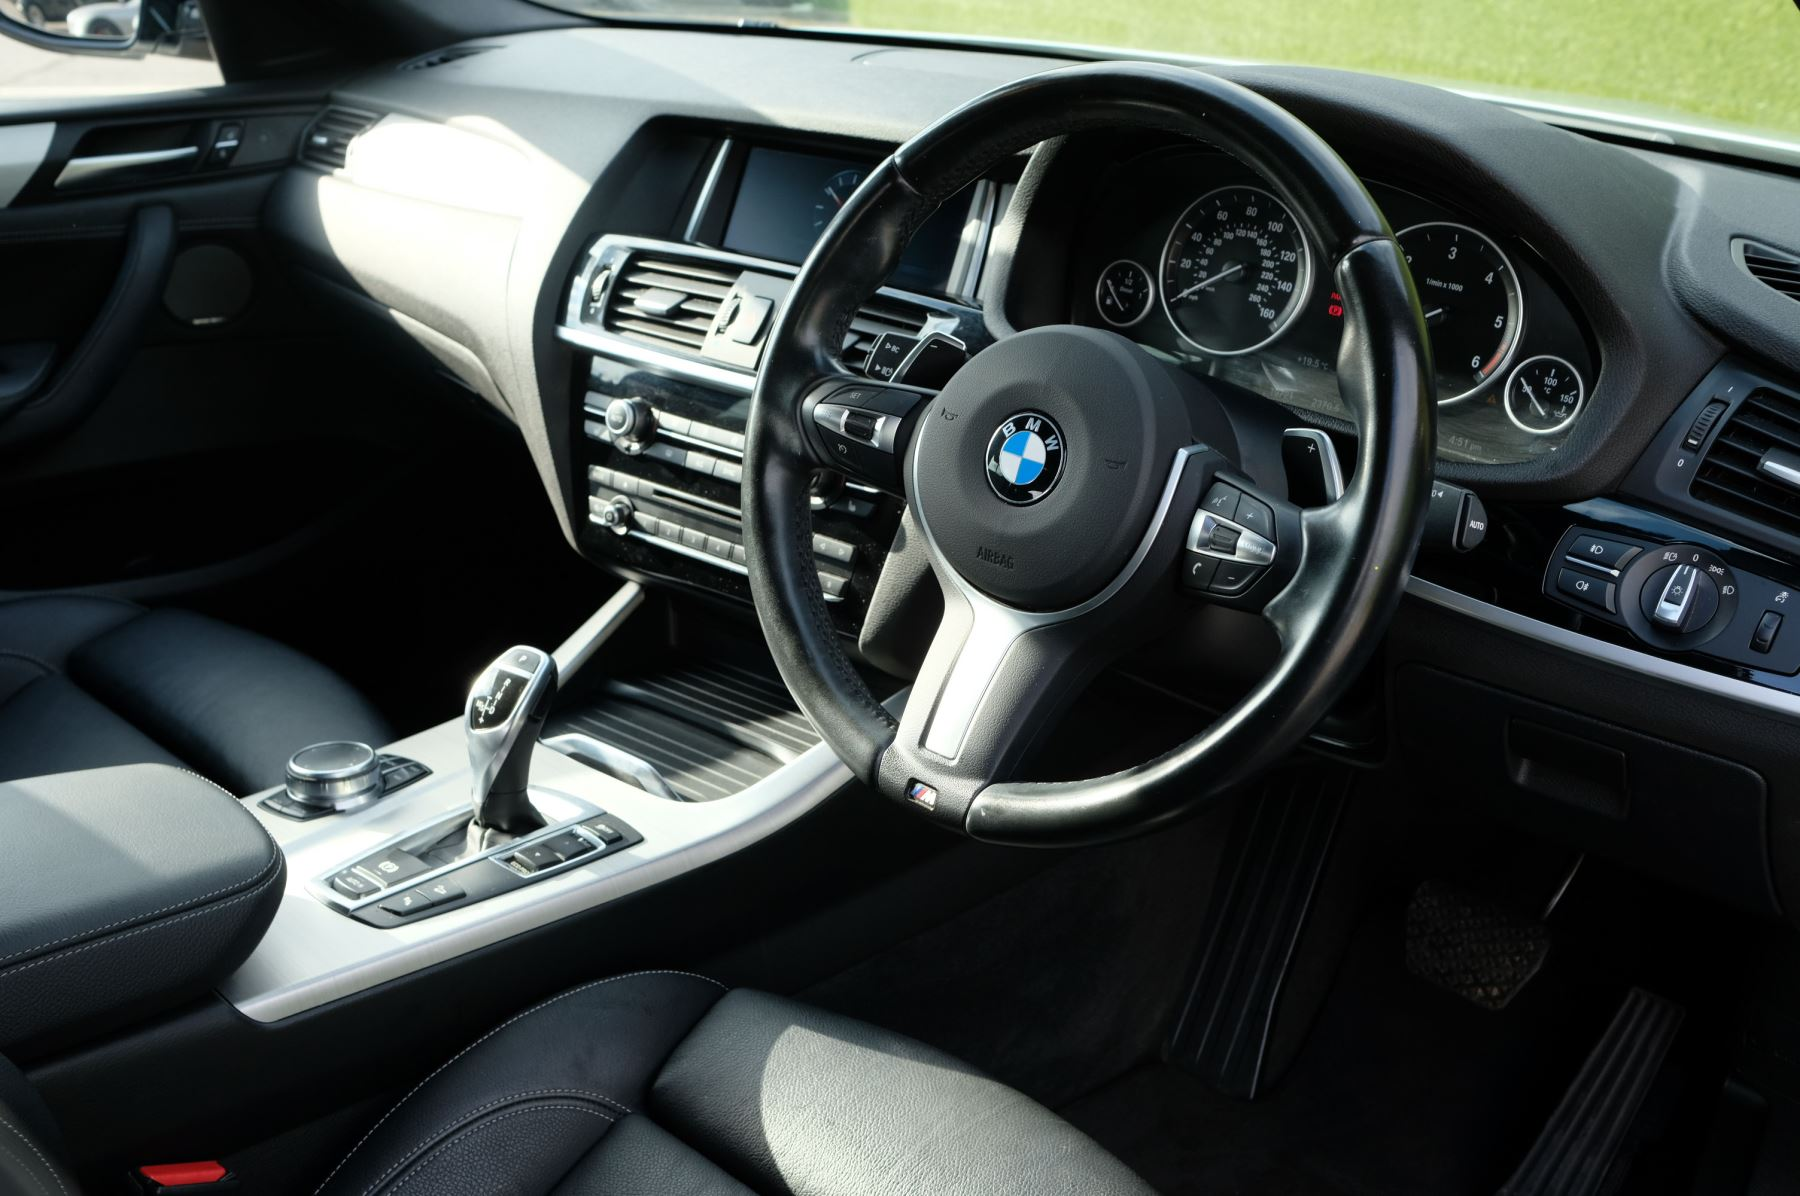 BMW X4 xDrive30d M Sport 5dr Step - M Sport Plus Package - Interior Comfort Package - Elec Glass Sunroof -  image 9